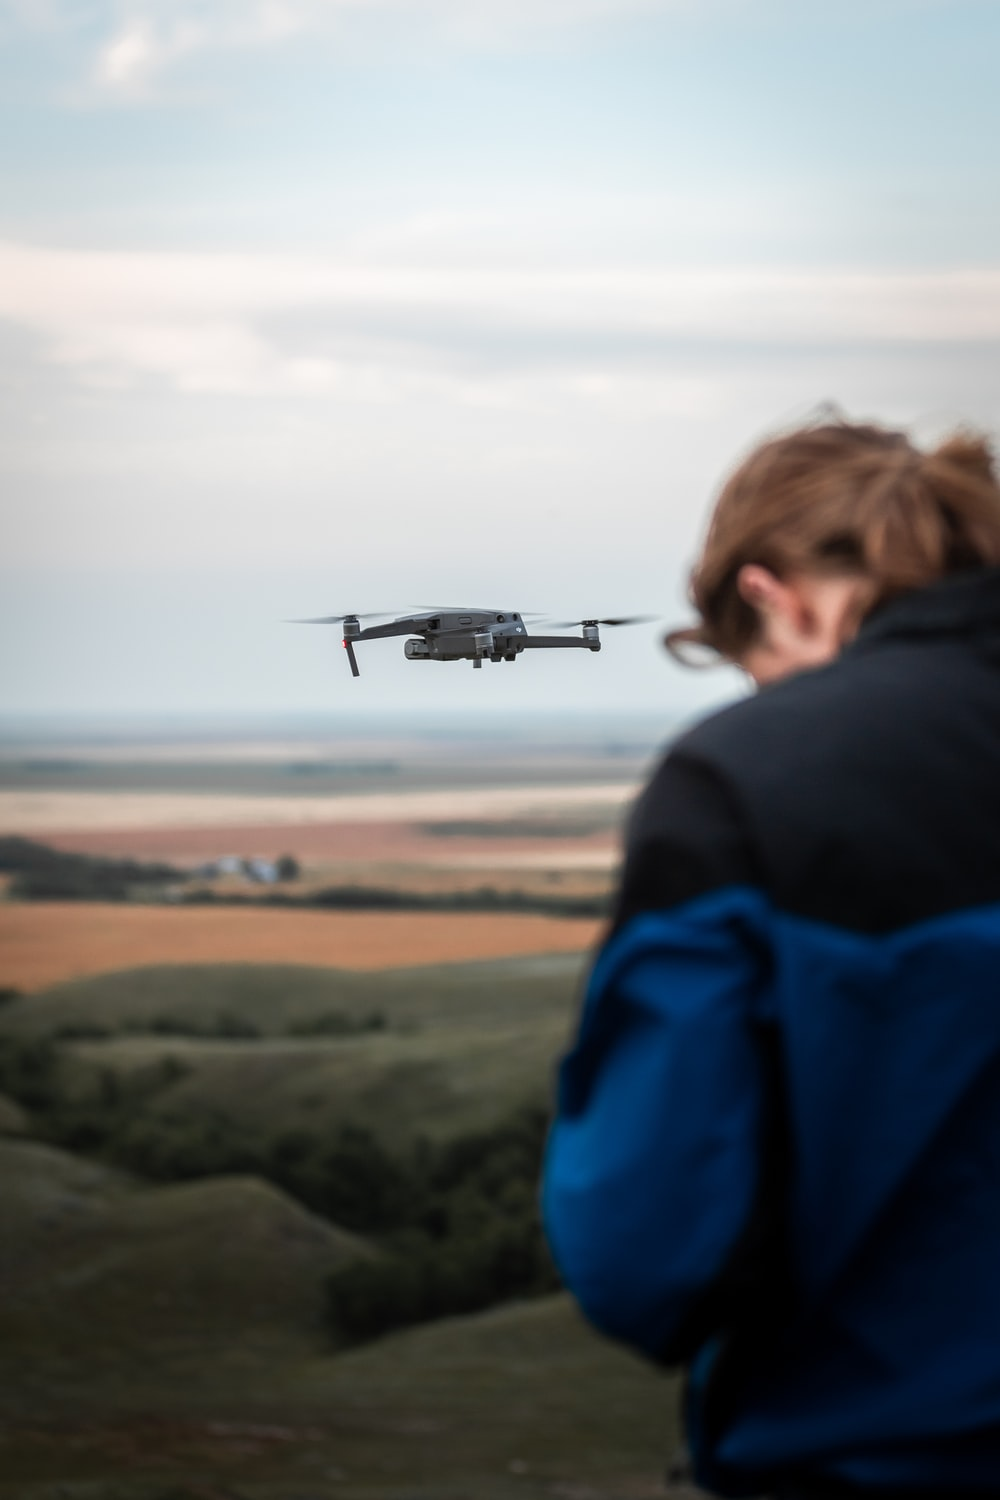 man in blue jacket looking at gray drone